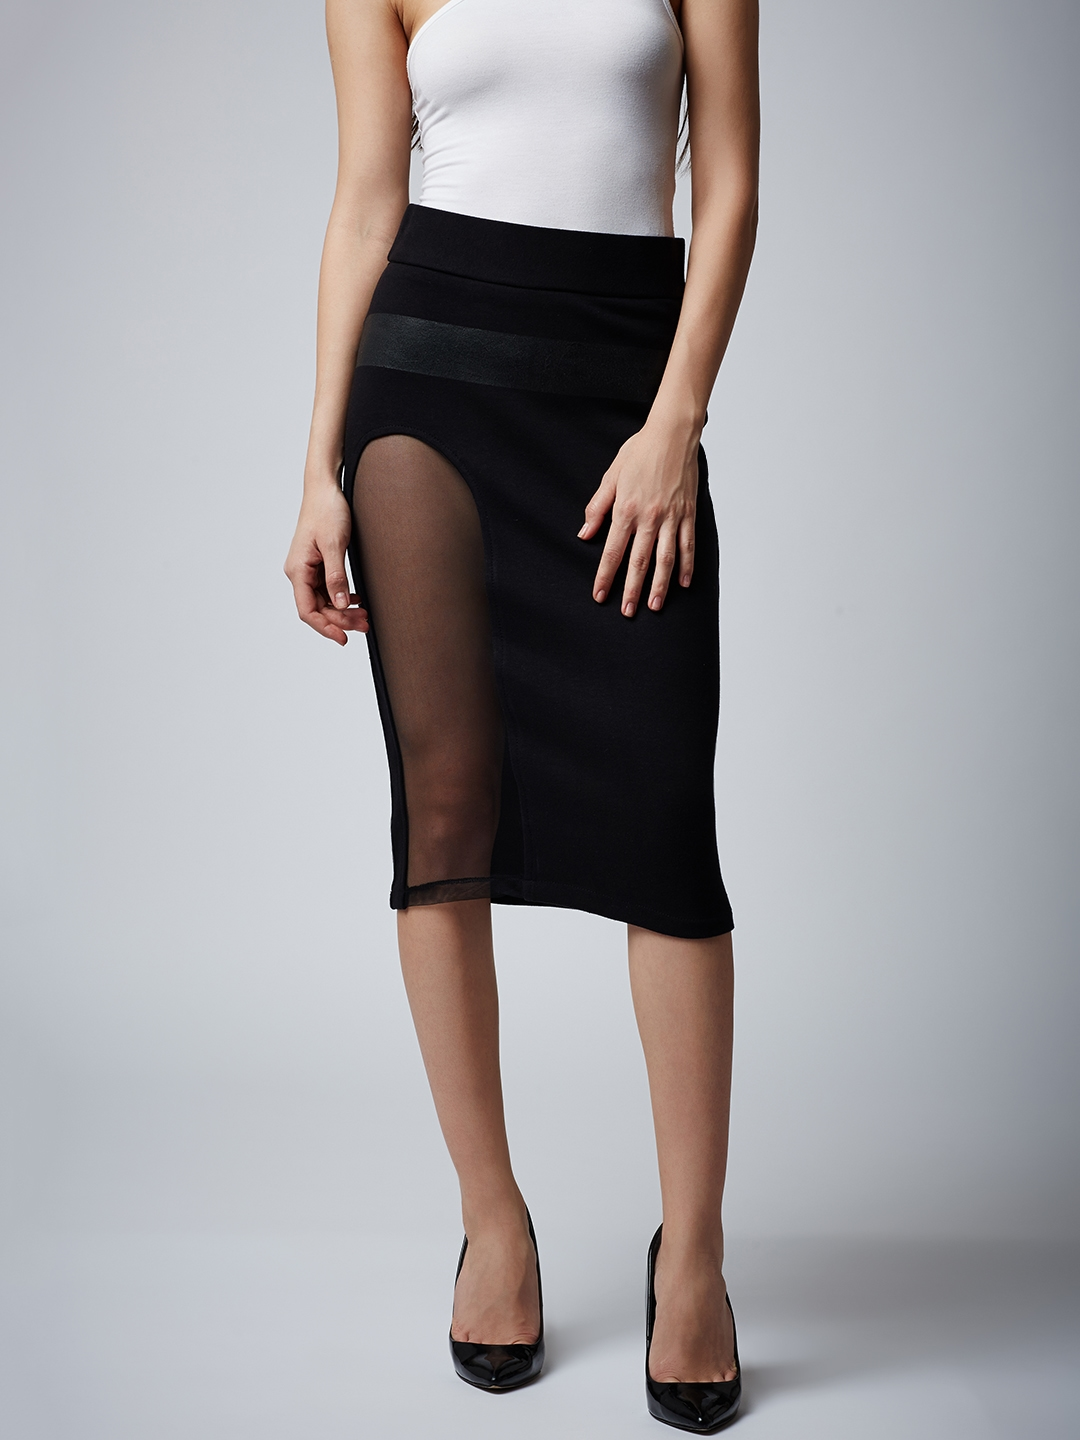 314e2ed3c3 Buy Rider Republic Black Solid Knee Length Pencil Skirt With Mesh ...